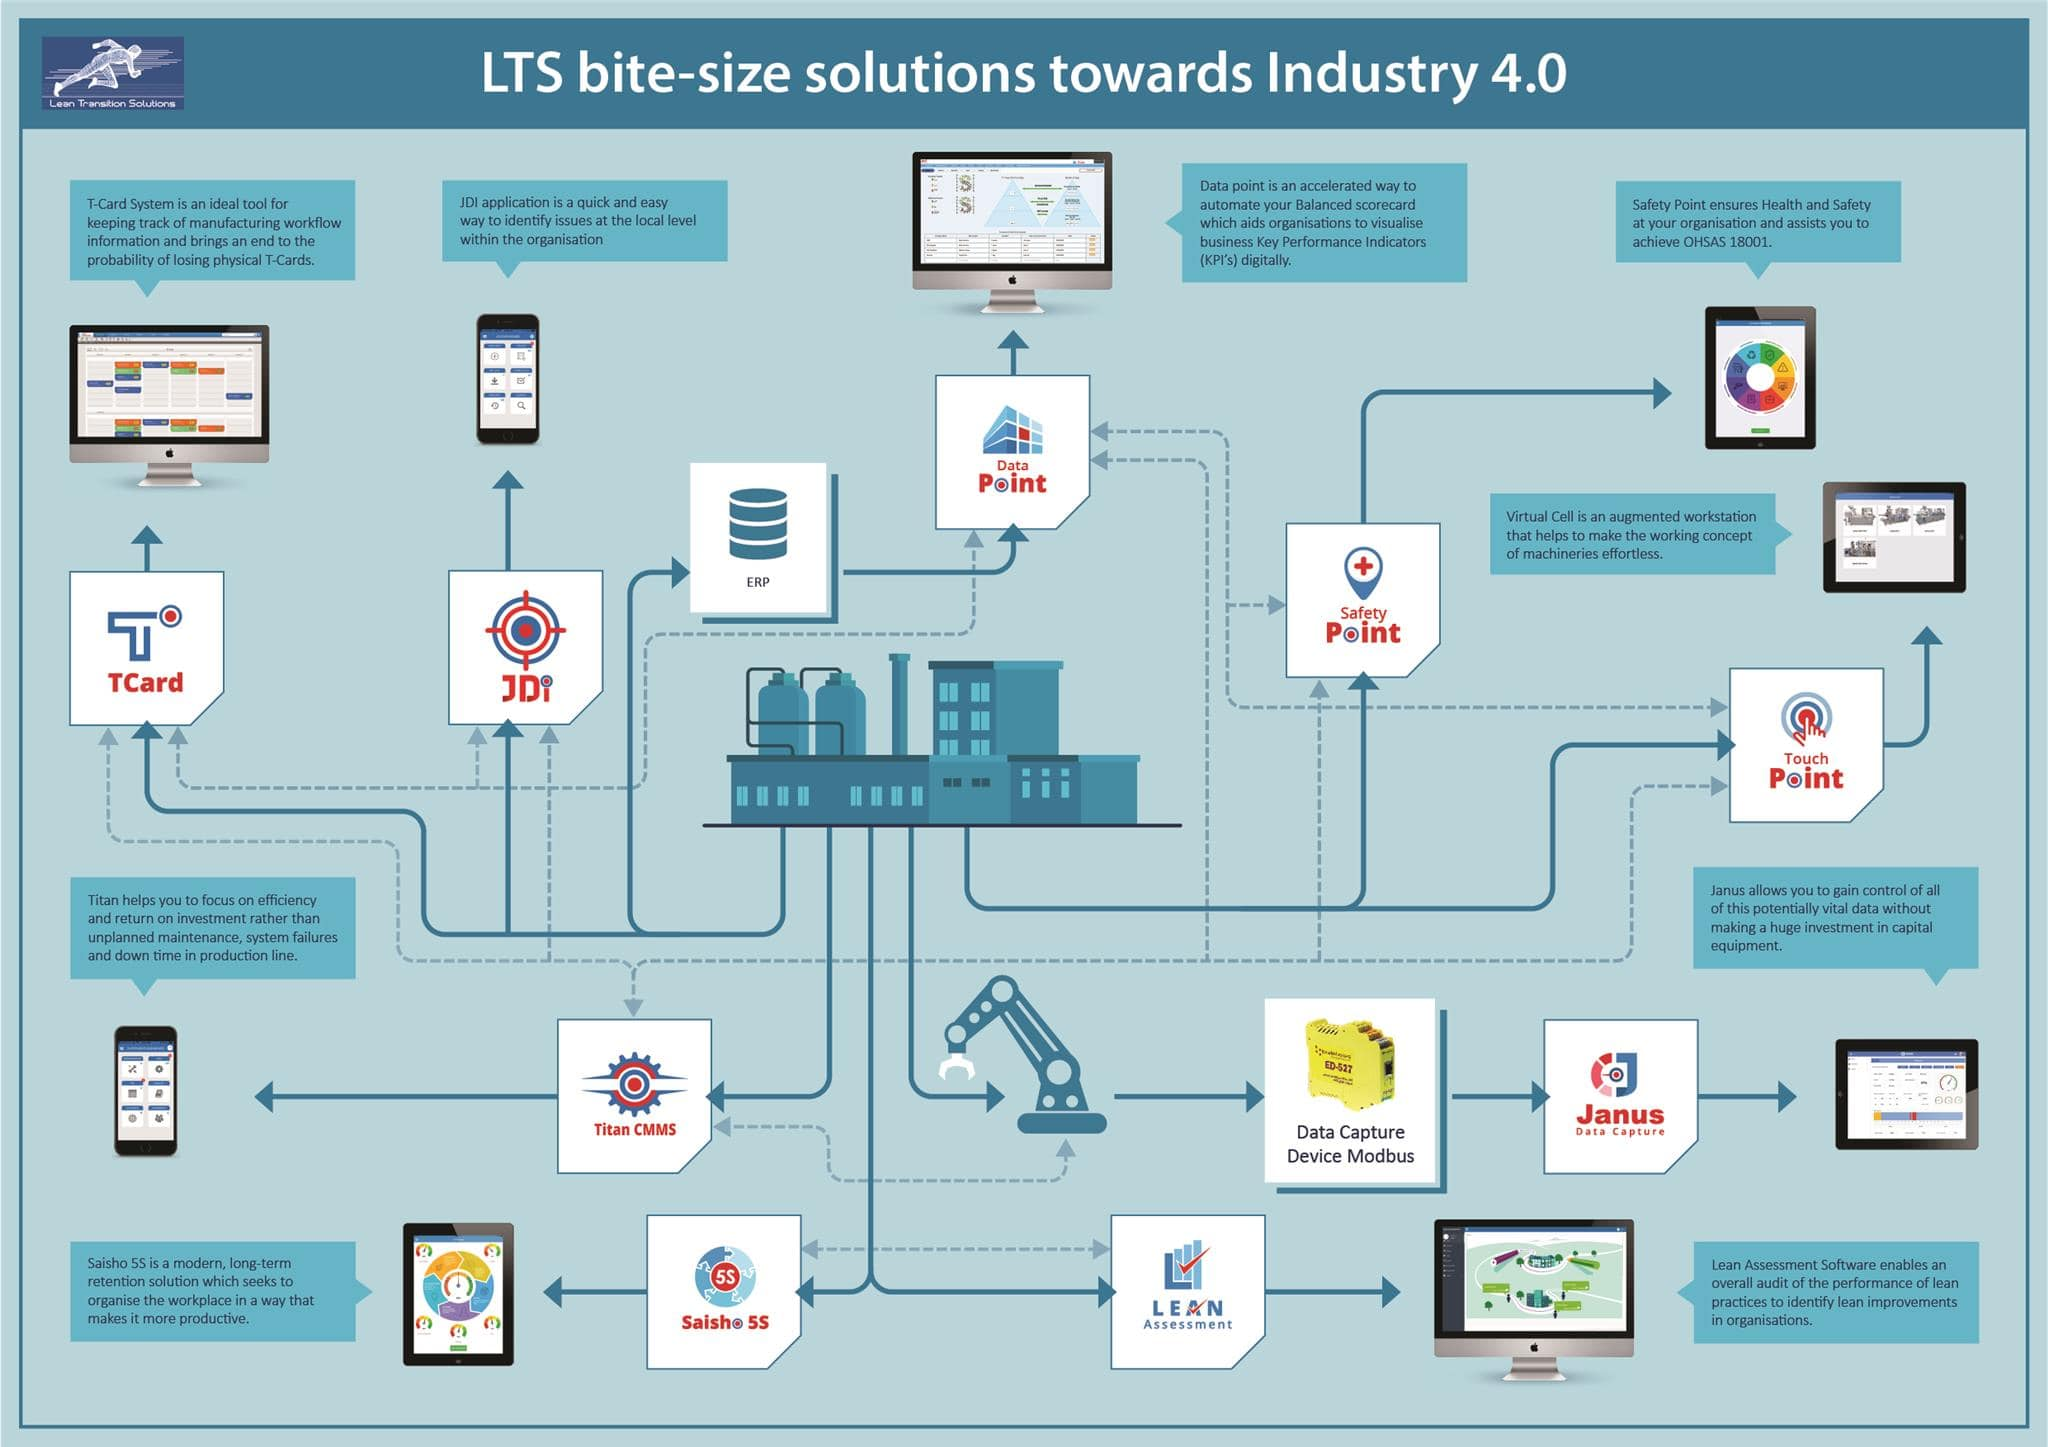 How TPM can work in Industry 4.0 environment?